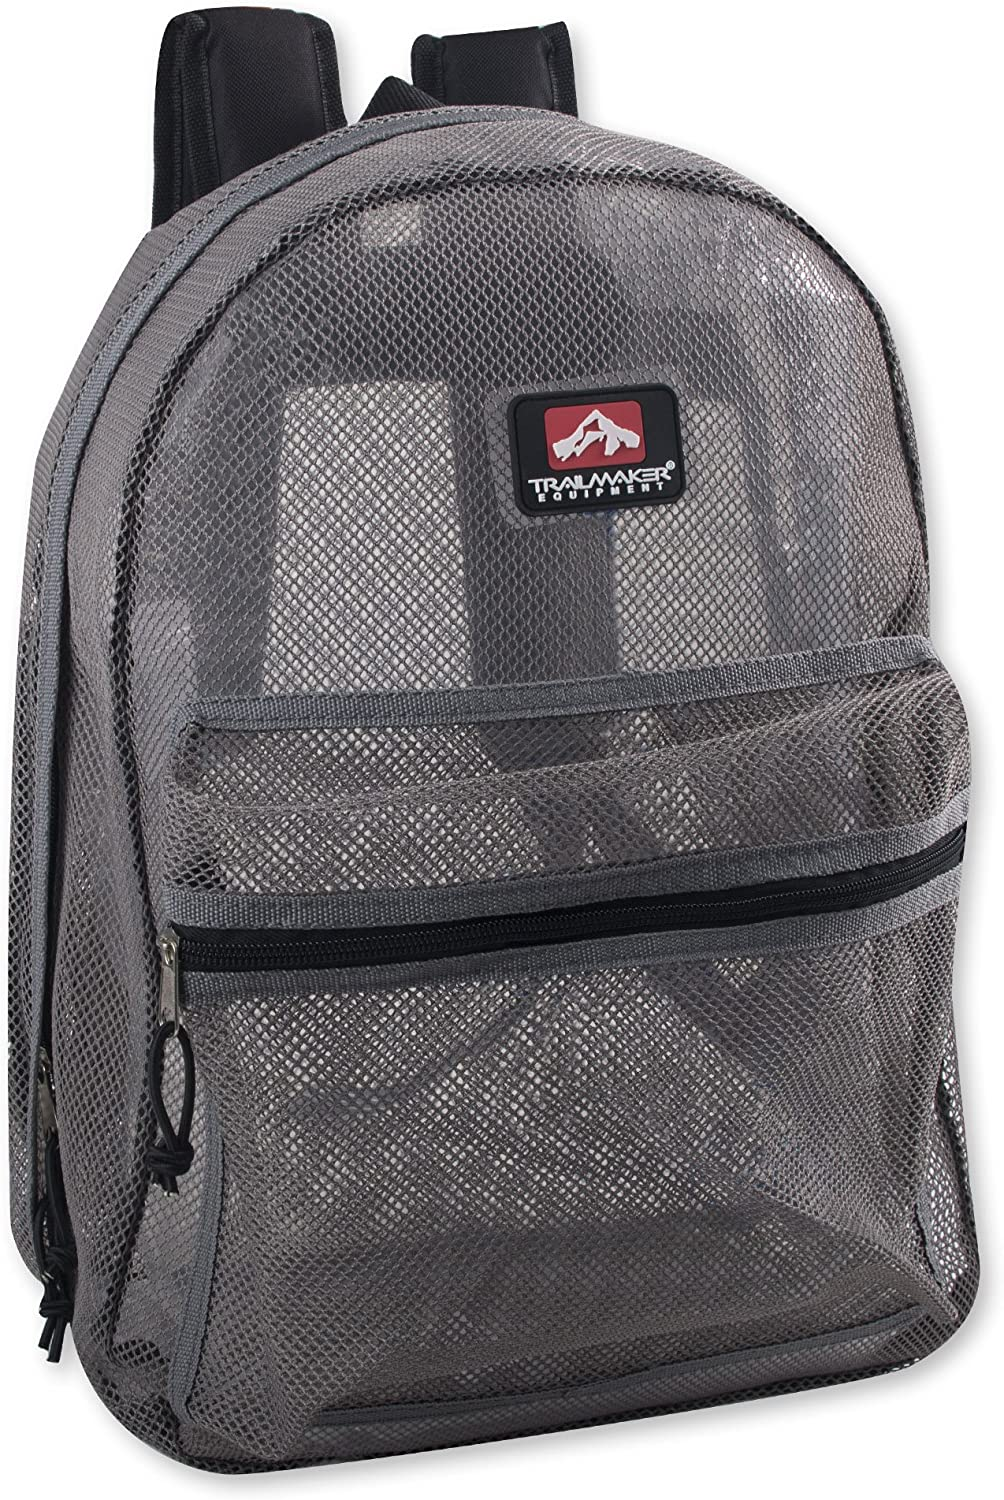 Trailmaker Transparent Mesh Backpack for School, Beach, and Travel, with Padded Shoulder Straps (Grey)